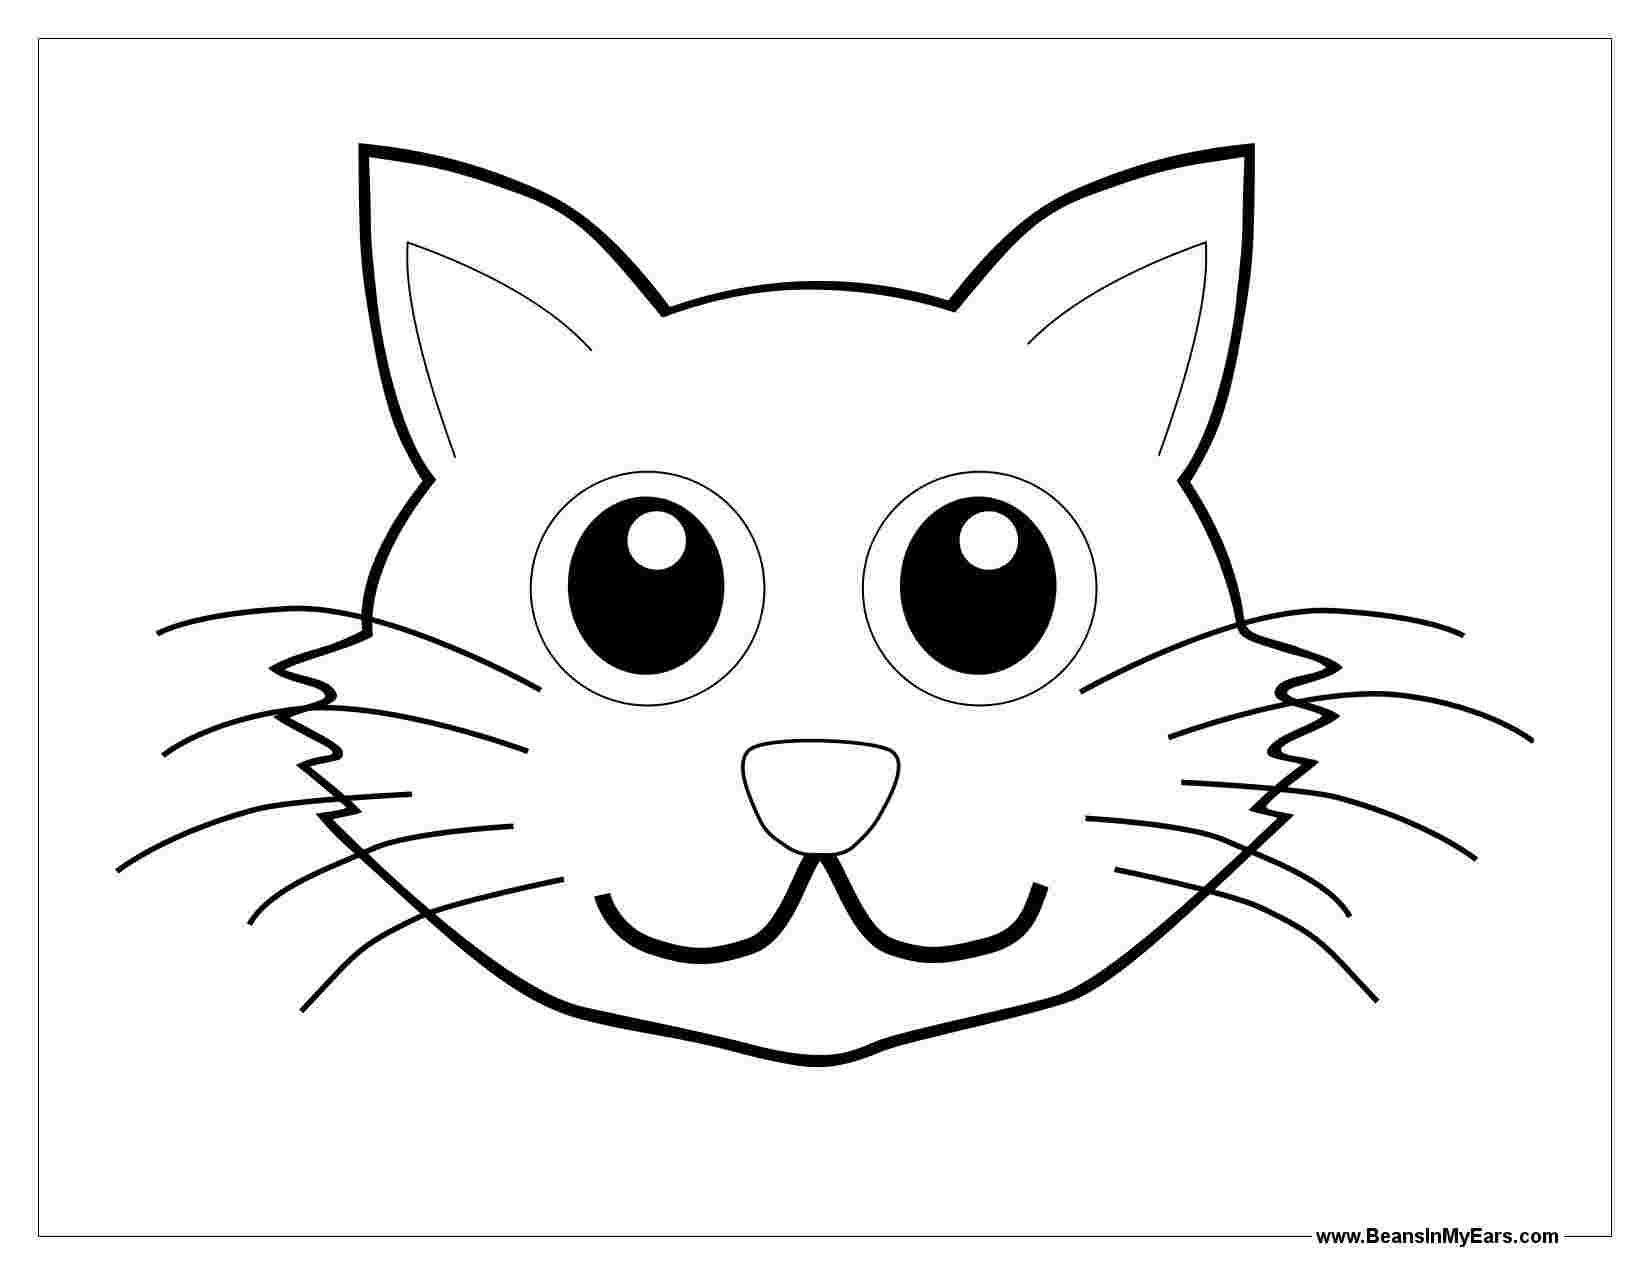 Best Printable Animal Faces Coloring Pages 777 Amazing